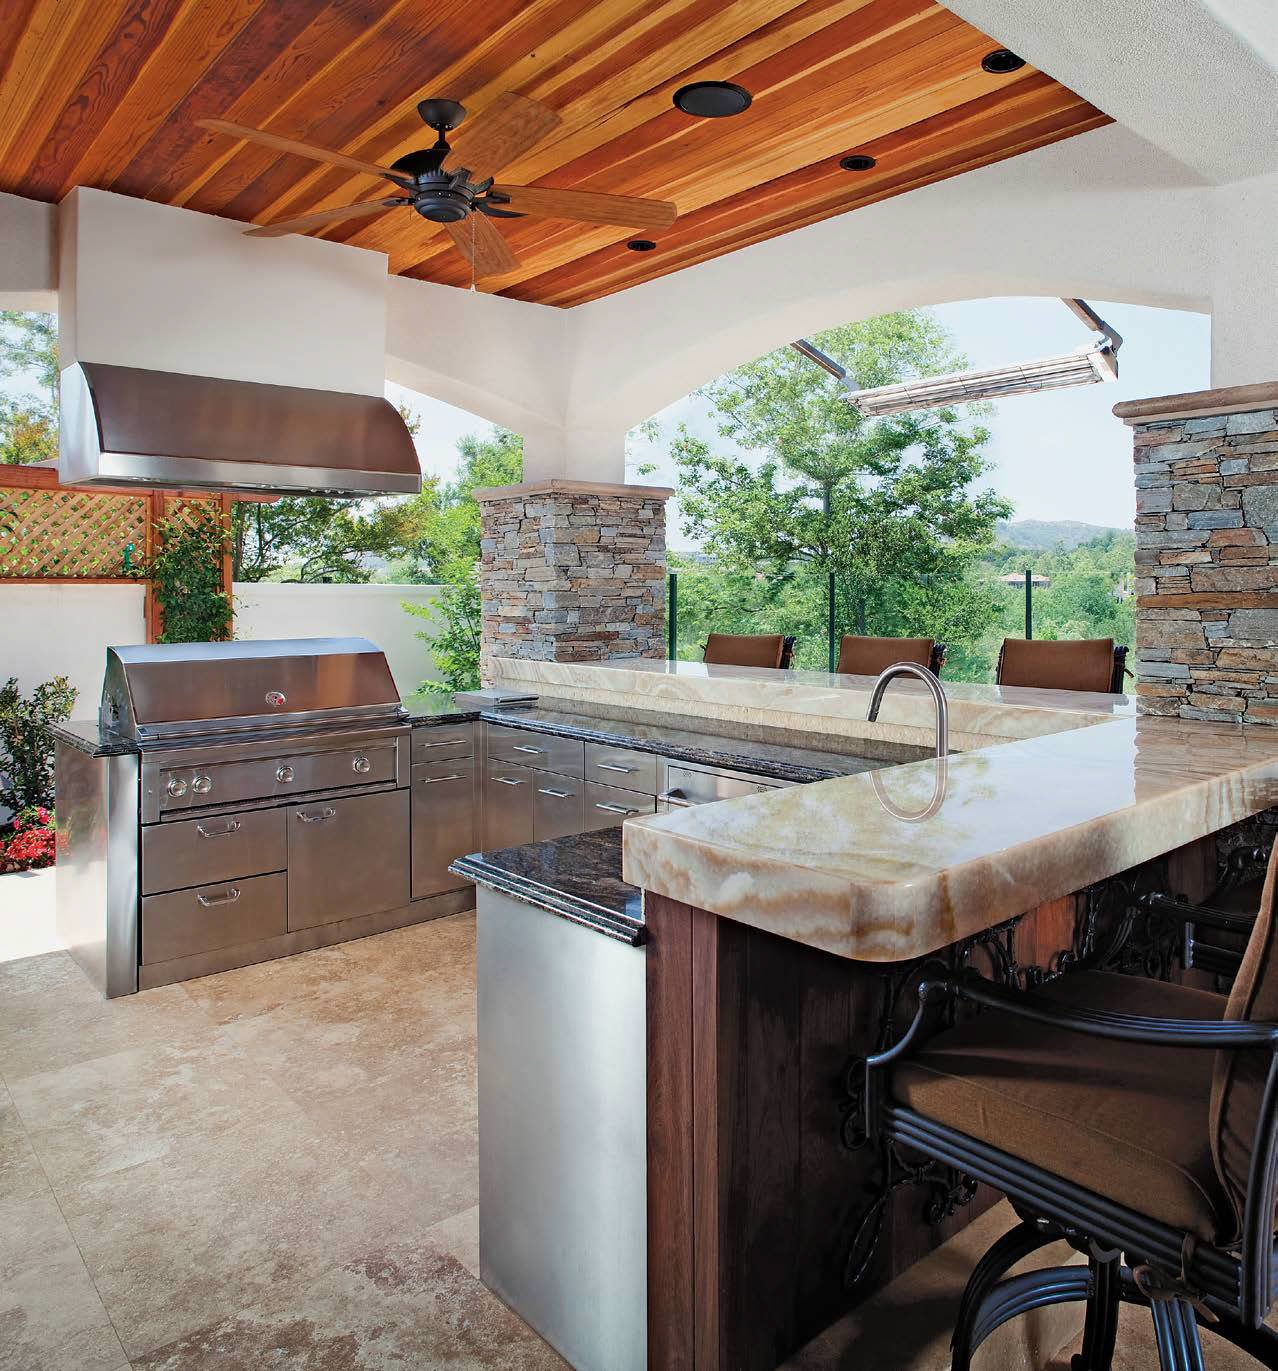 Outdoor kitchen with a large bar area featuring a combination of granite and marble countertops.